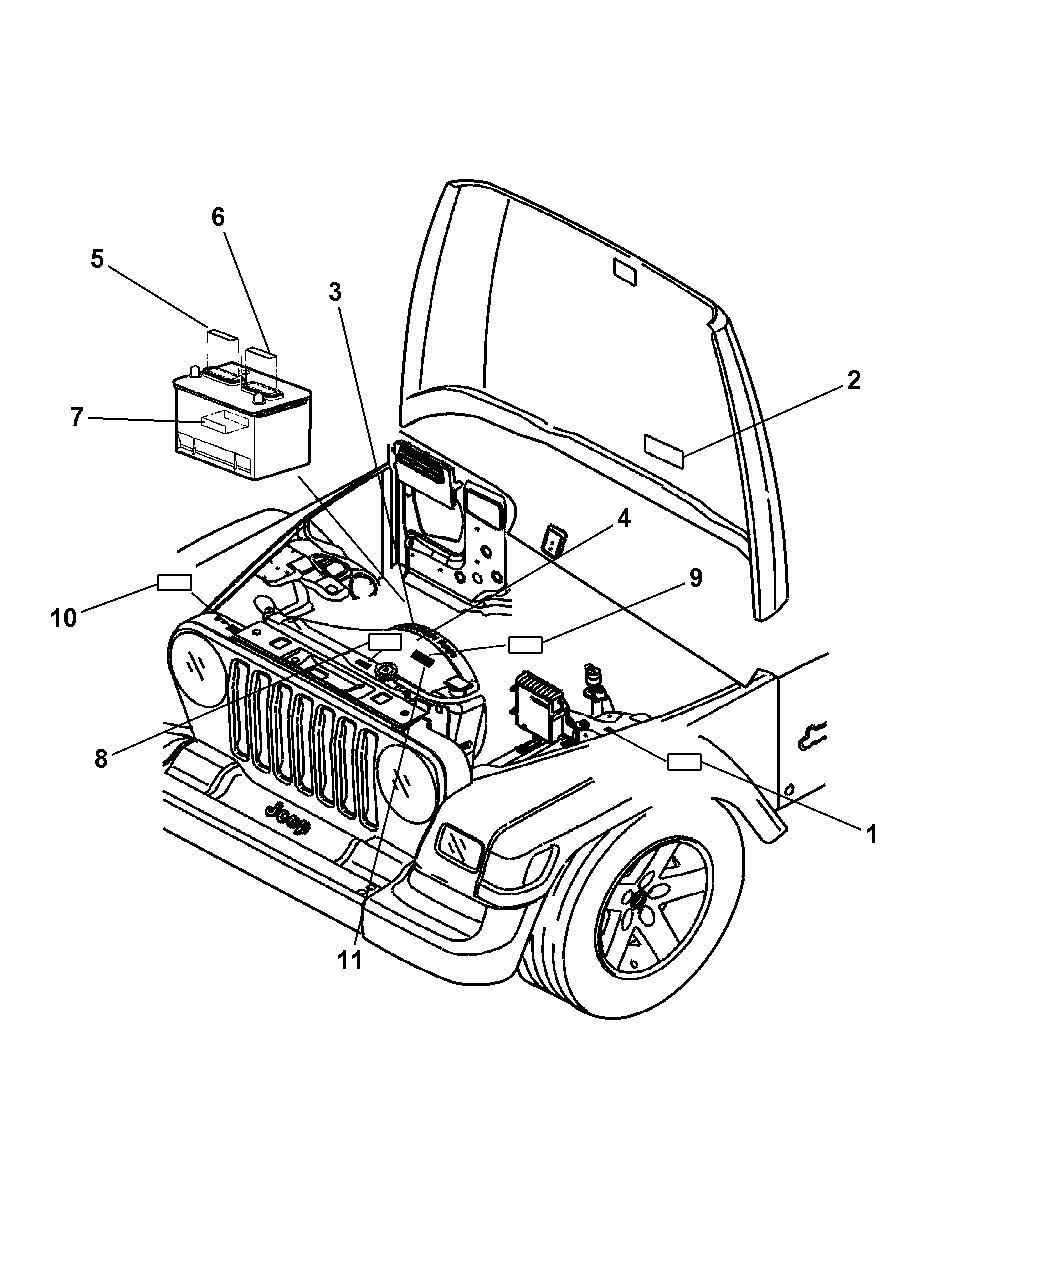 53031758aa - genuine mopar label-belt routing 2005 jeep liberty stereo wiring diagram